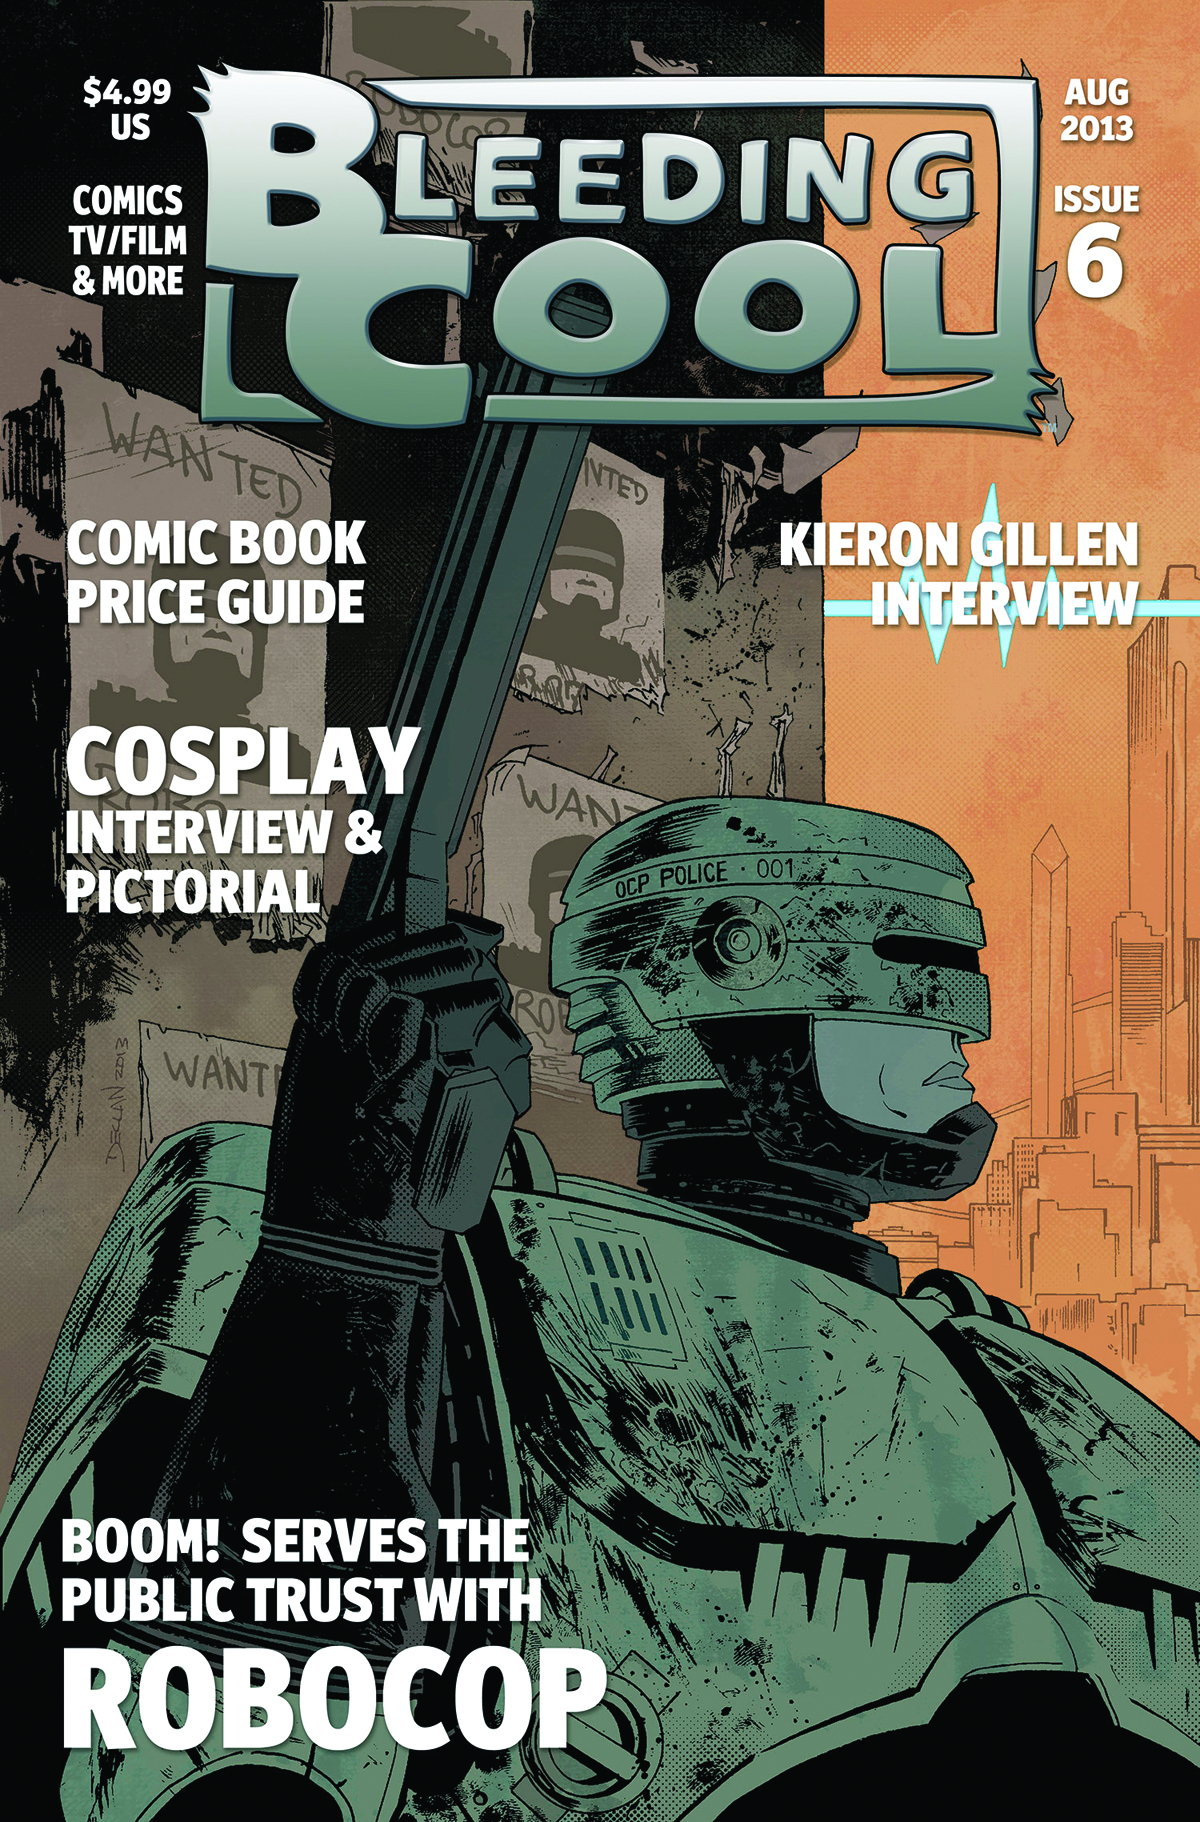 BLEEDING COOL MAGAZINE #6